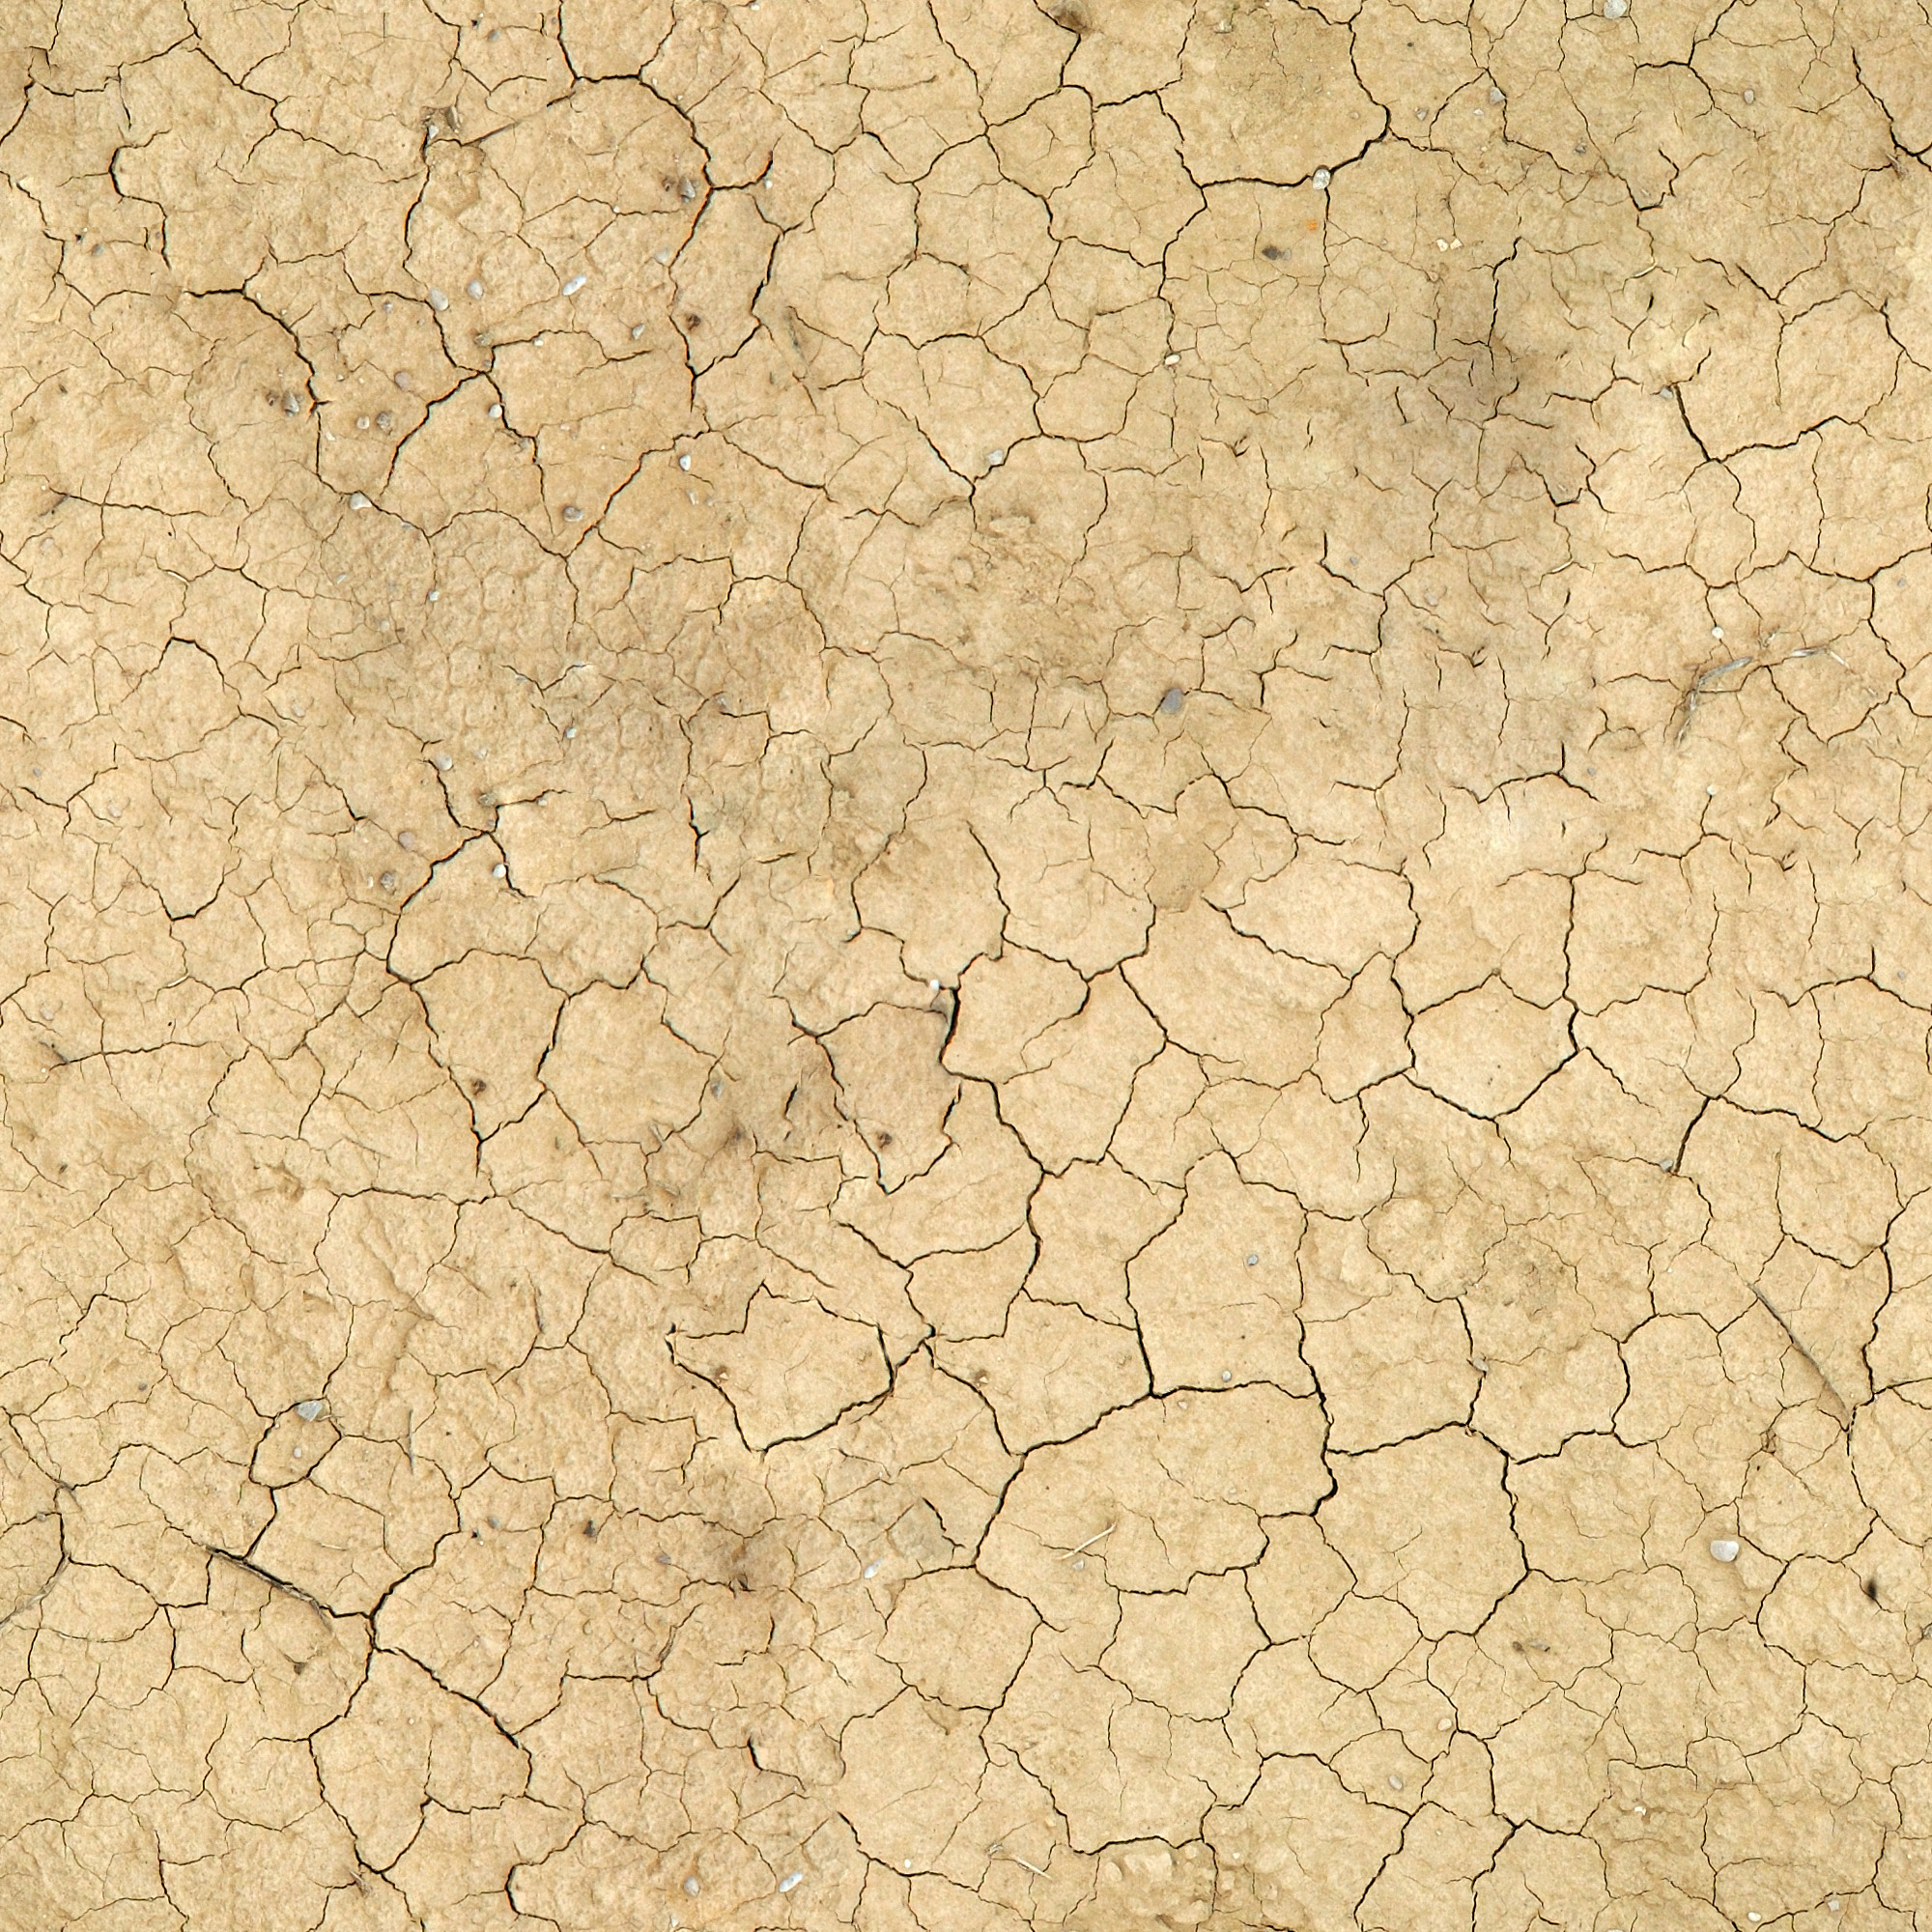 texture ground earth, download photo, background, ground texture